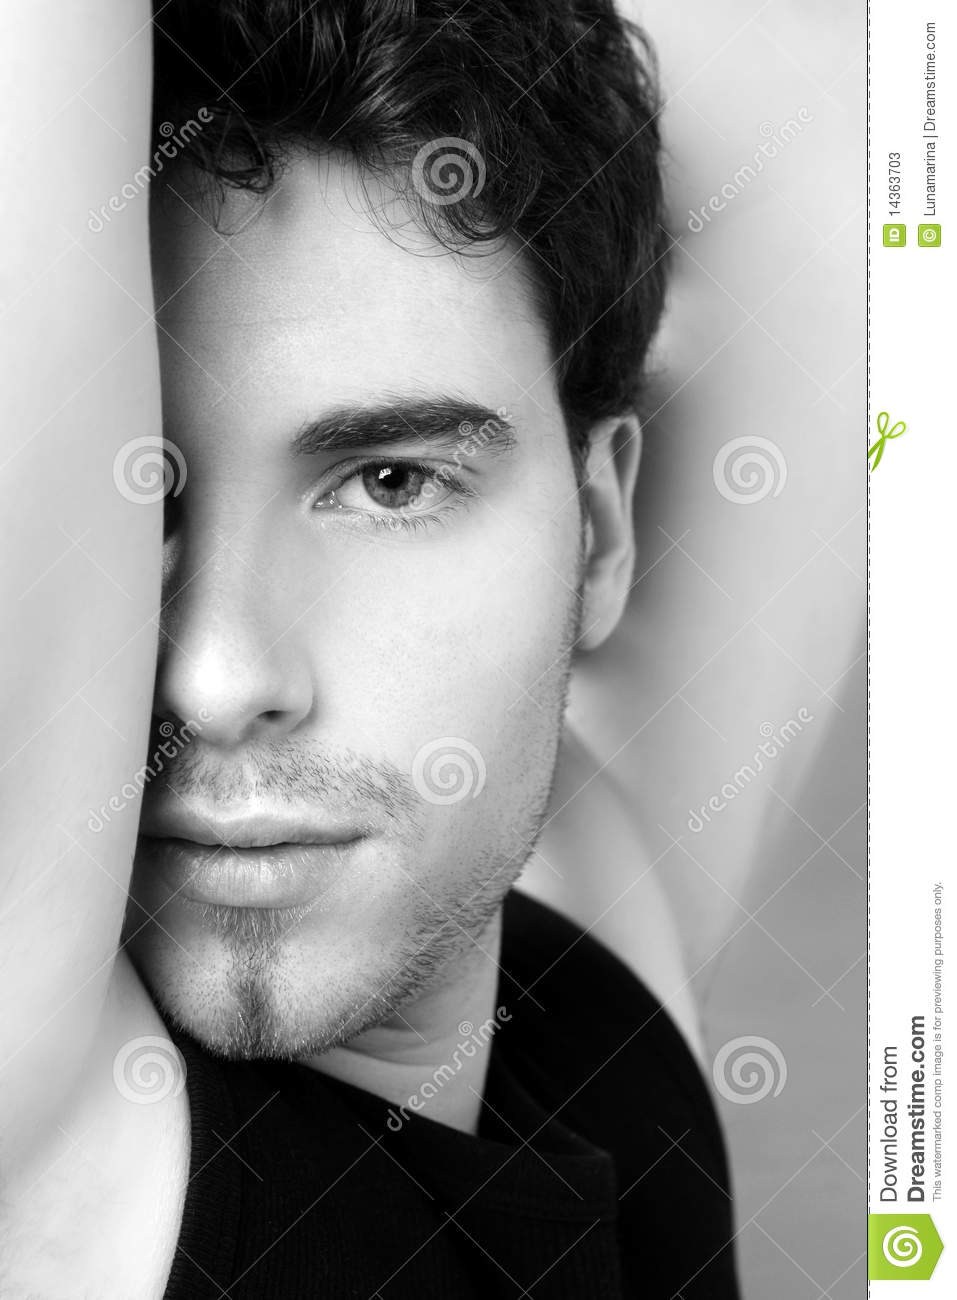 Black And White Young Man Face Portrait Stock Photos